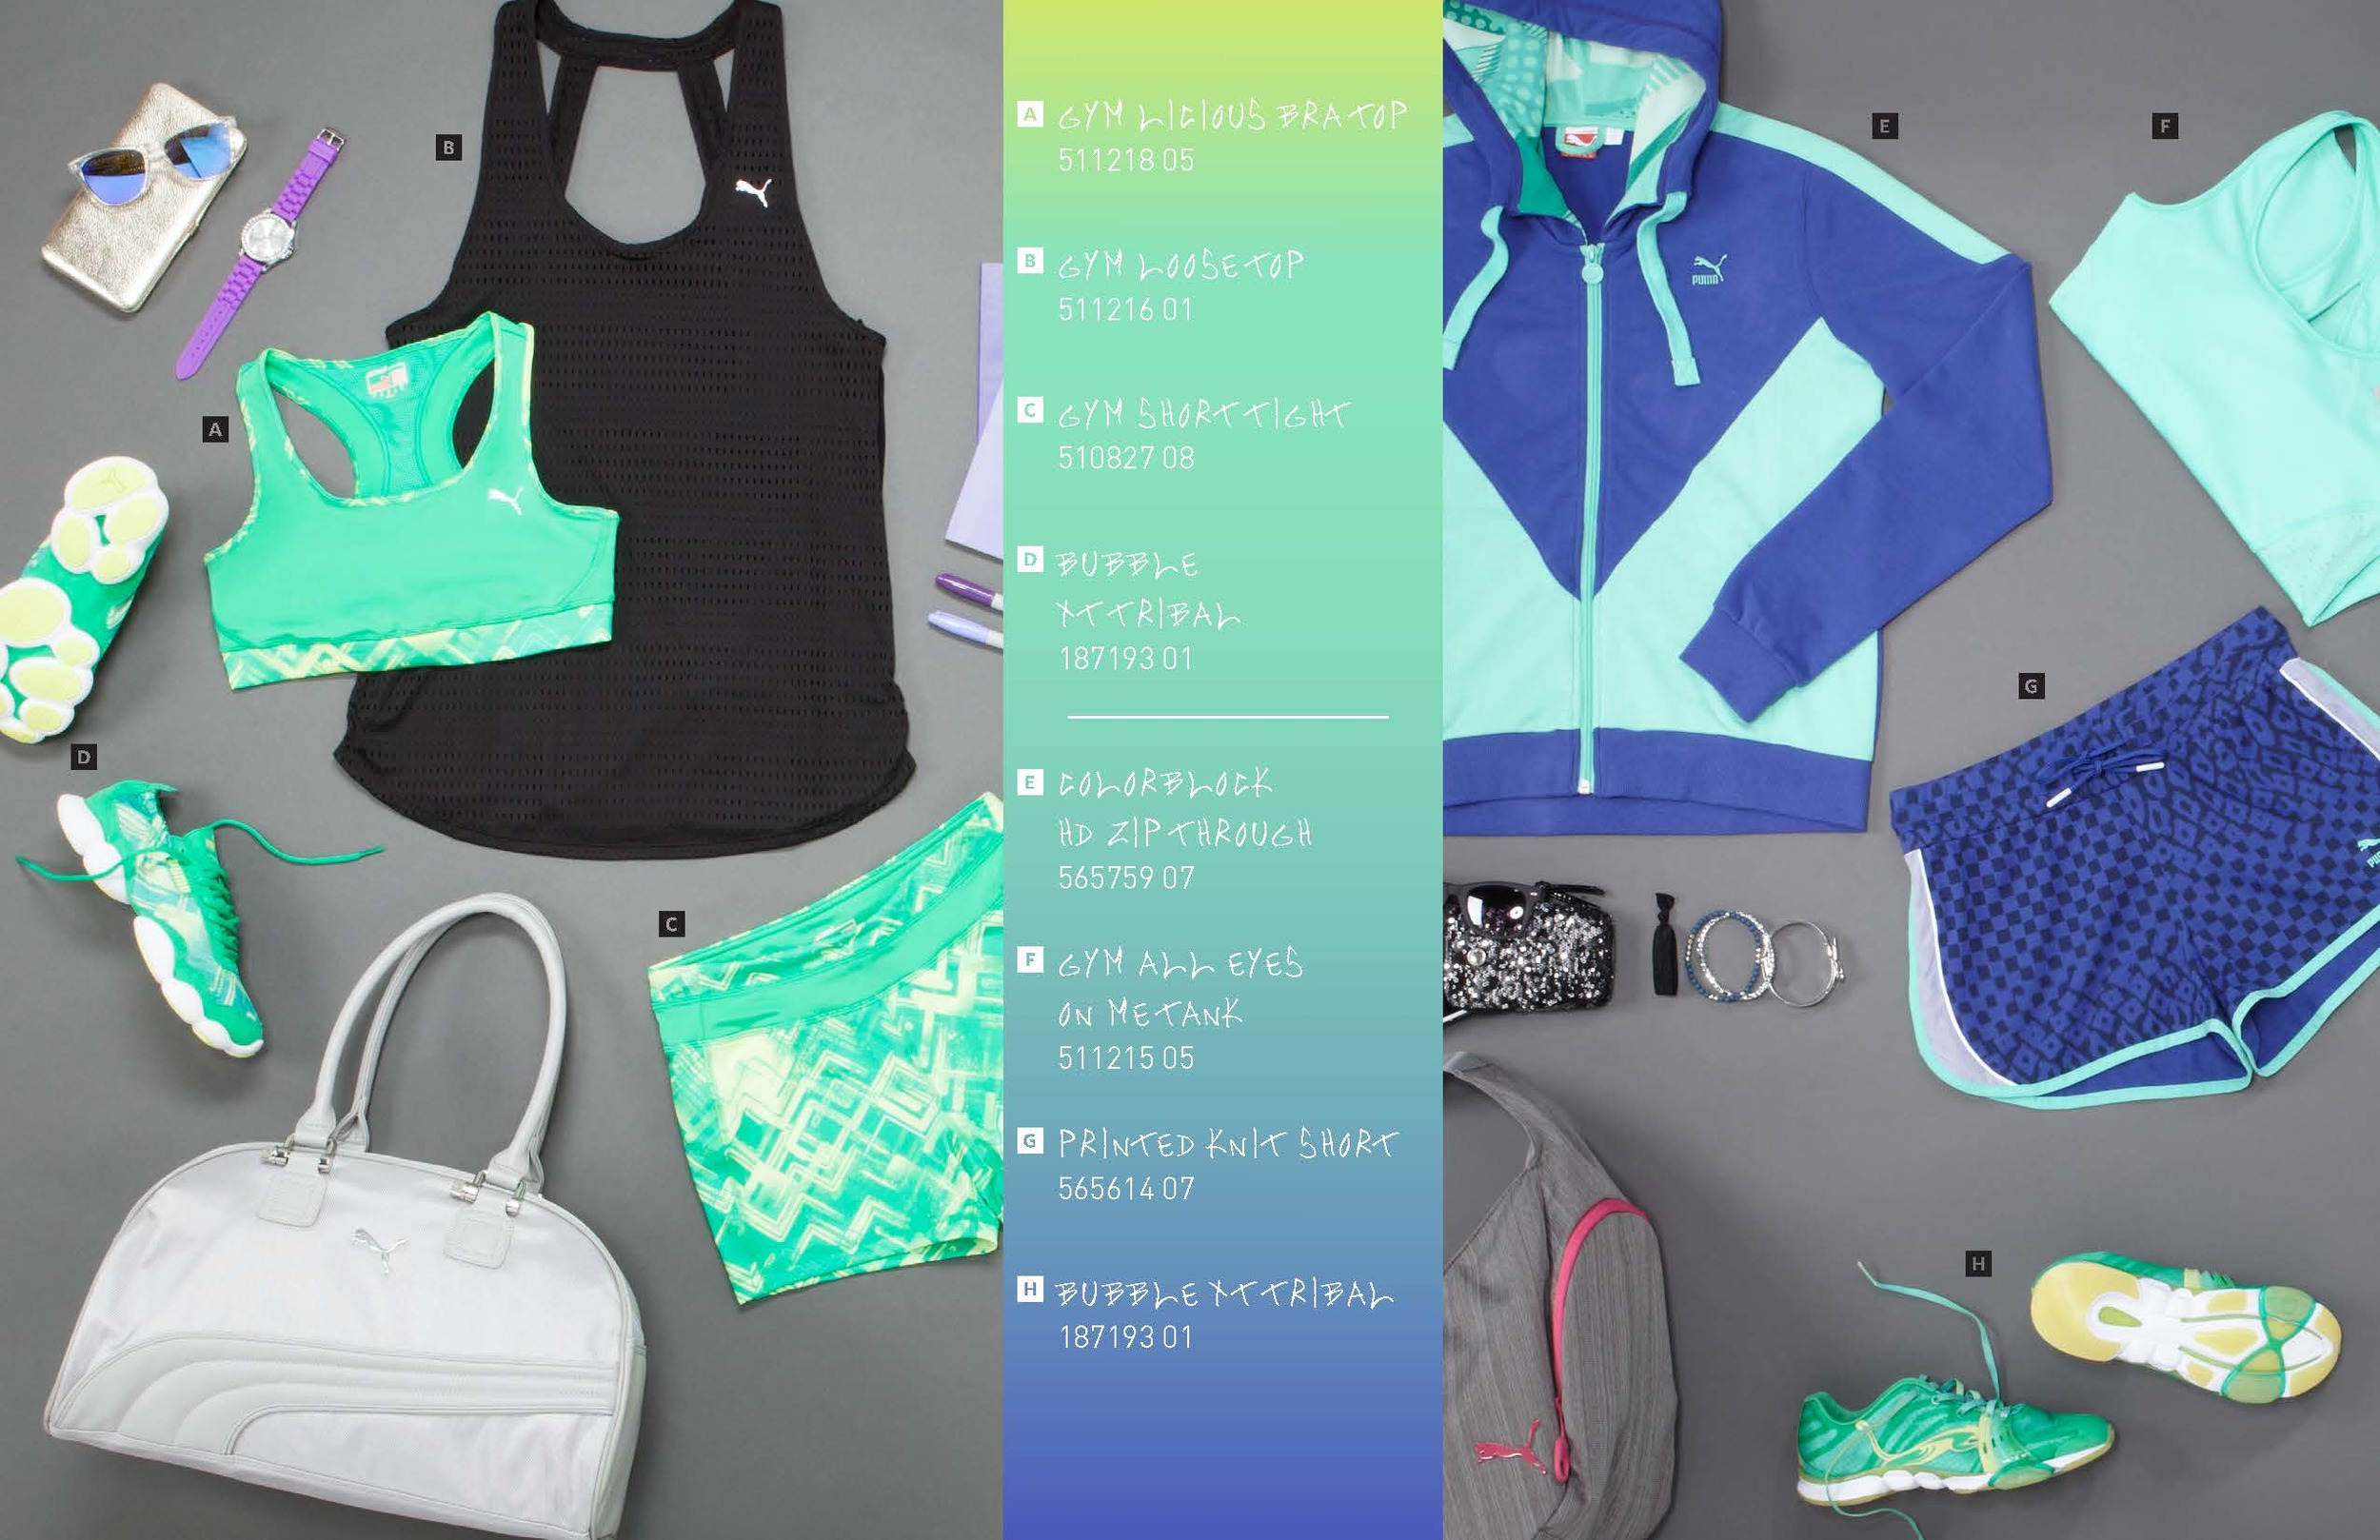 PUMA_booklet_7-30-13_HIRES_view_Page_11.jpg